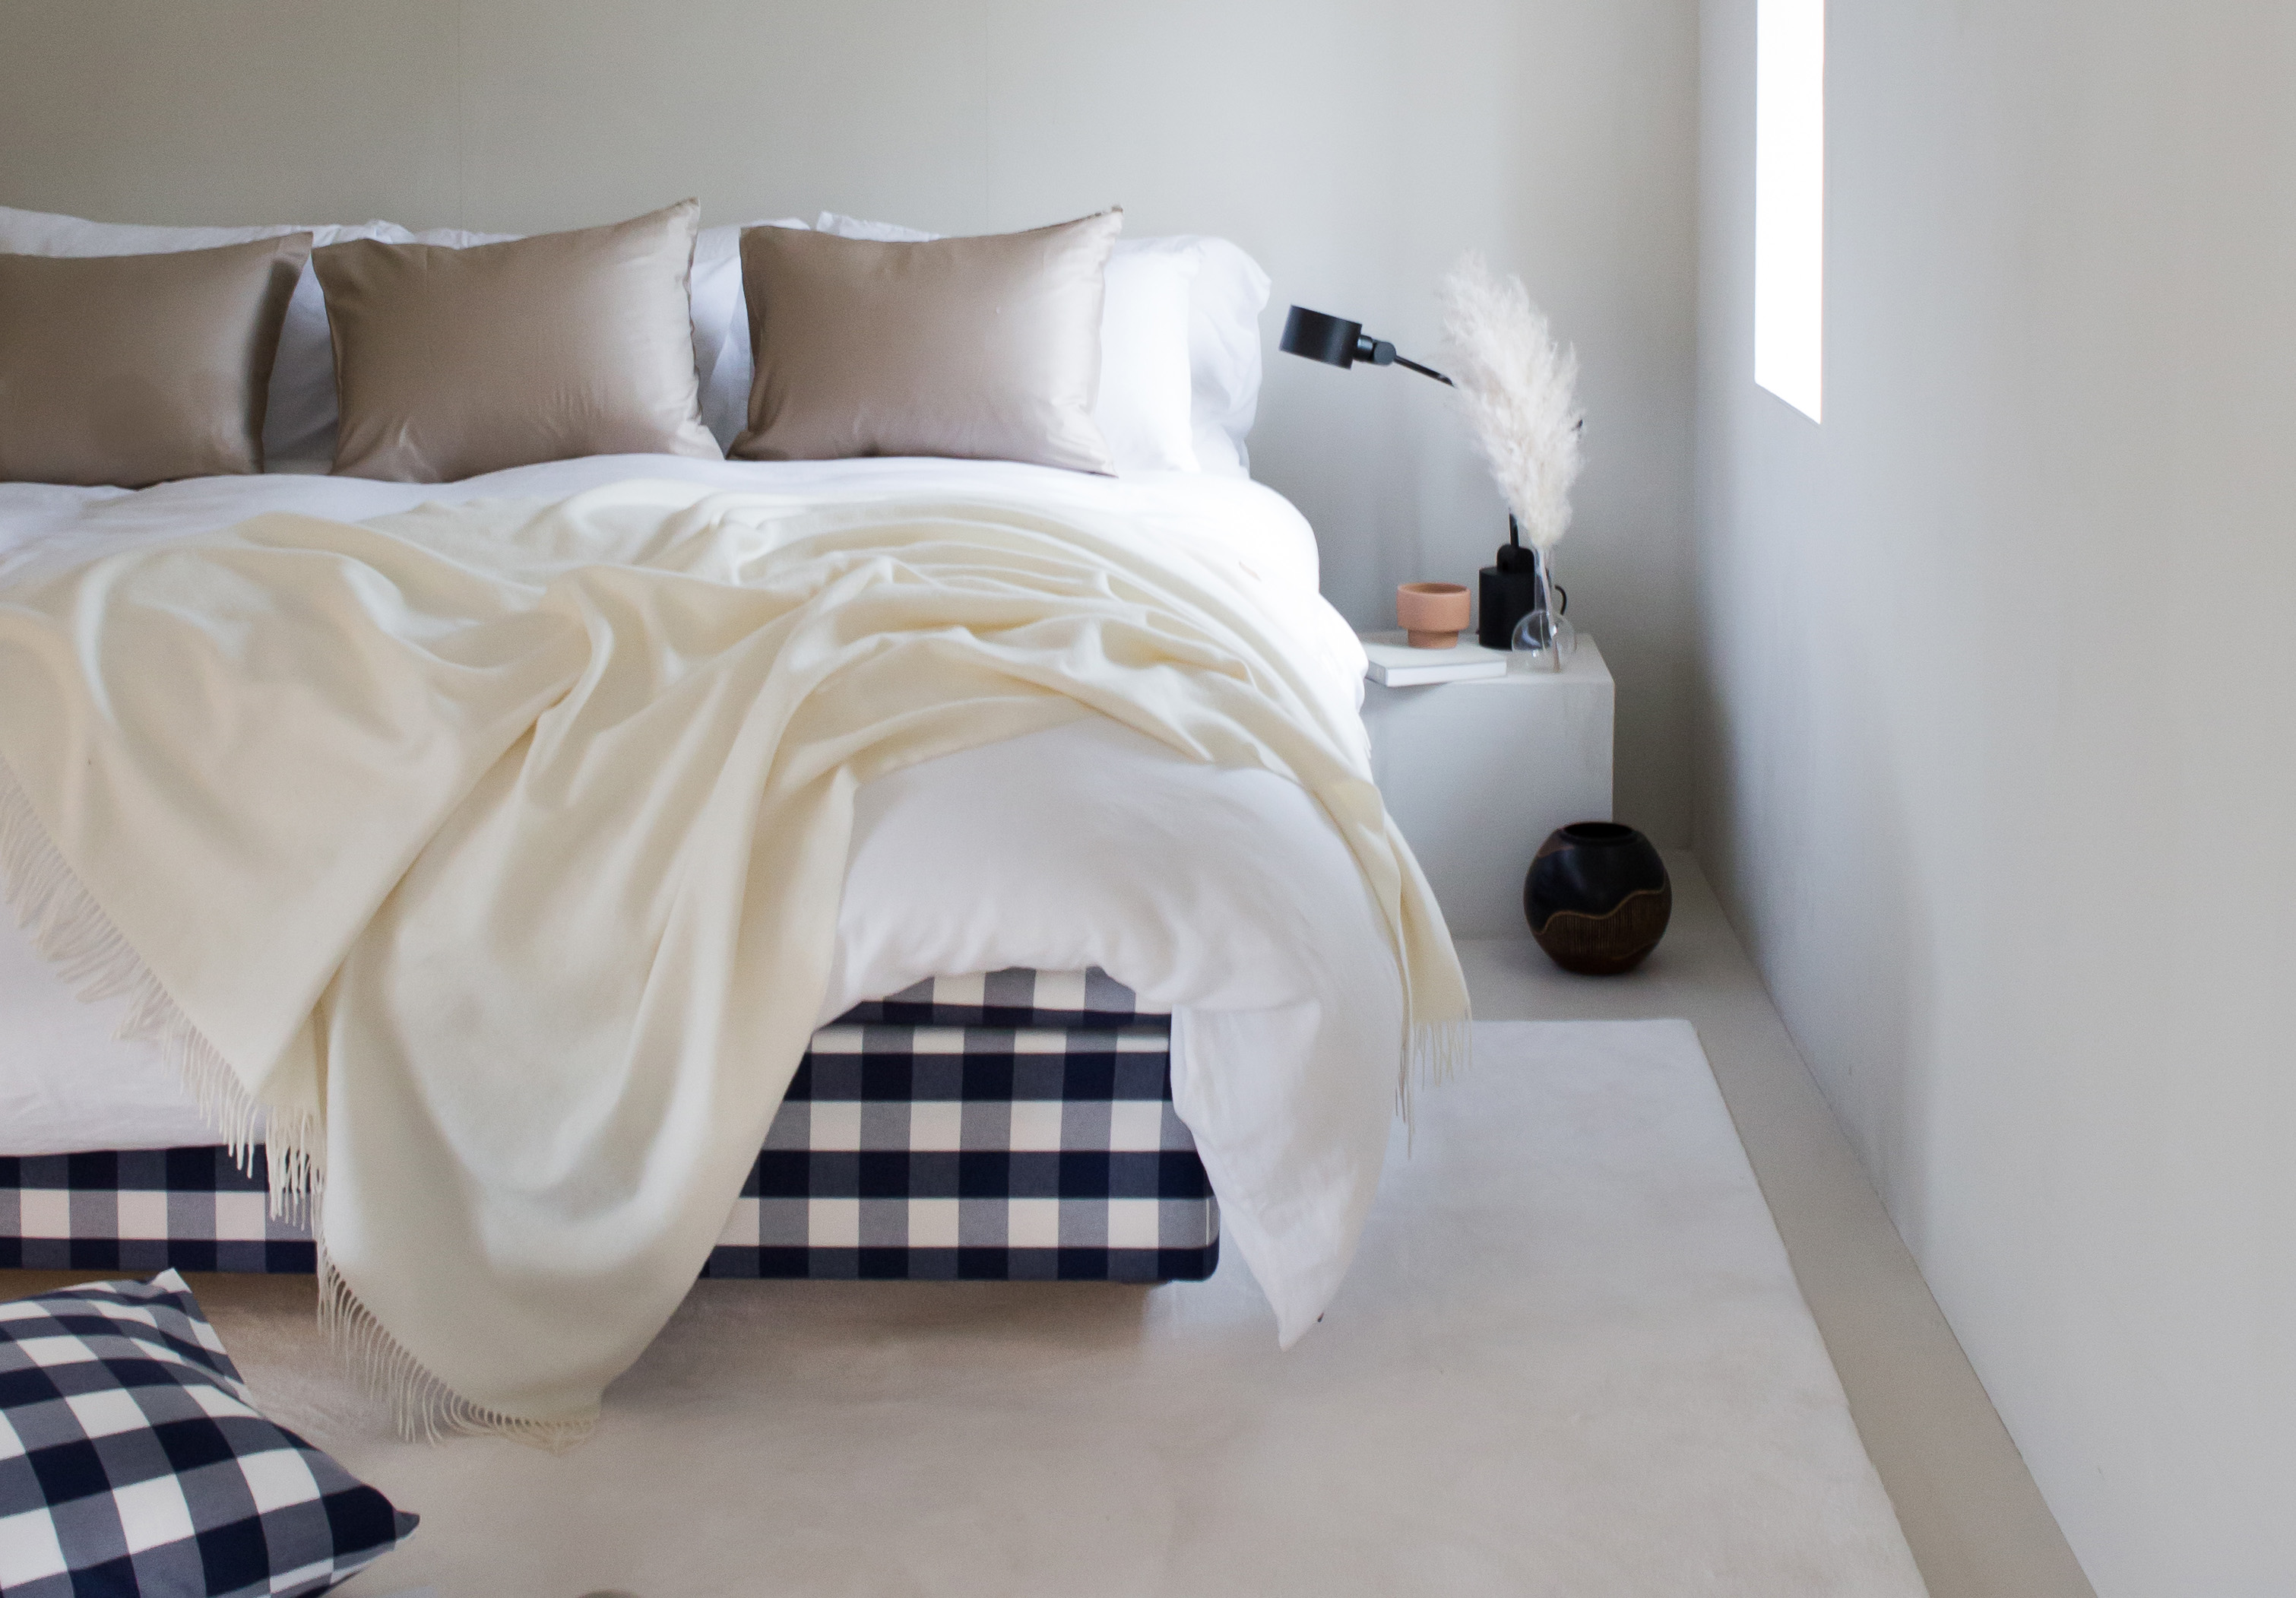 How to sleep better with Swedish bed manufacturer Hästens cate st